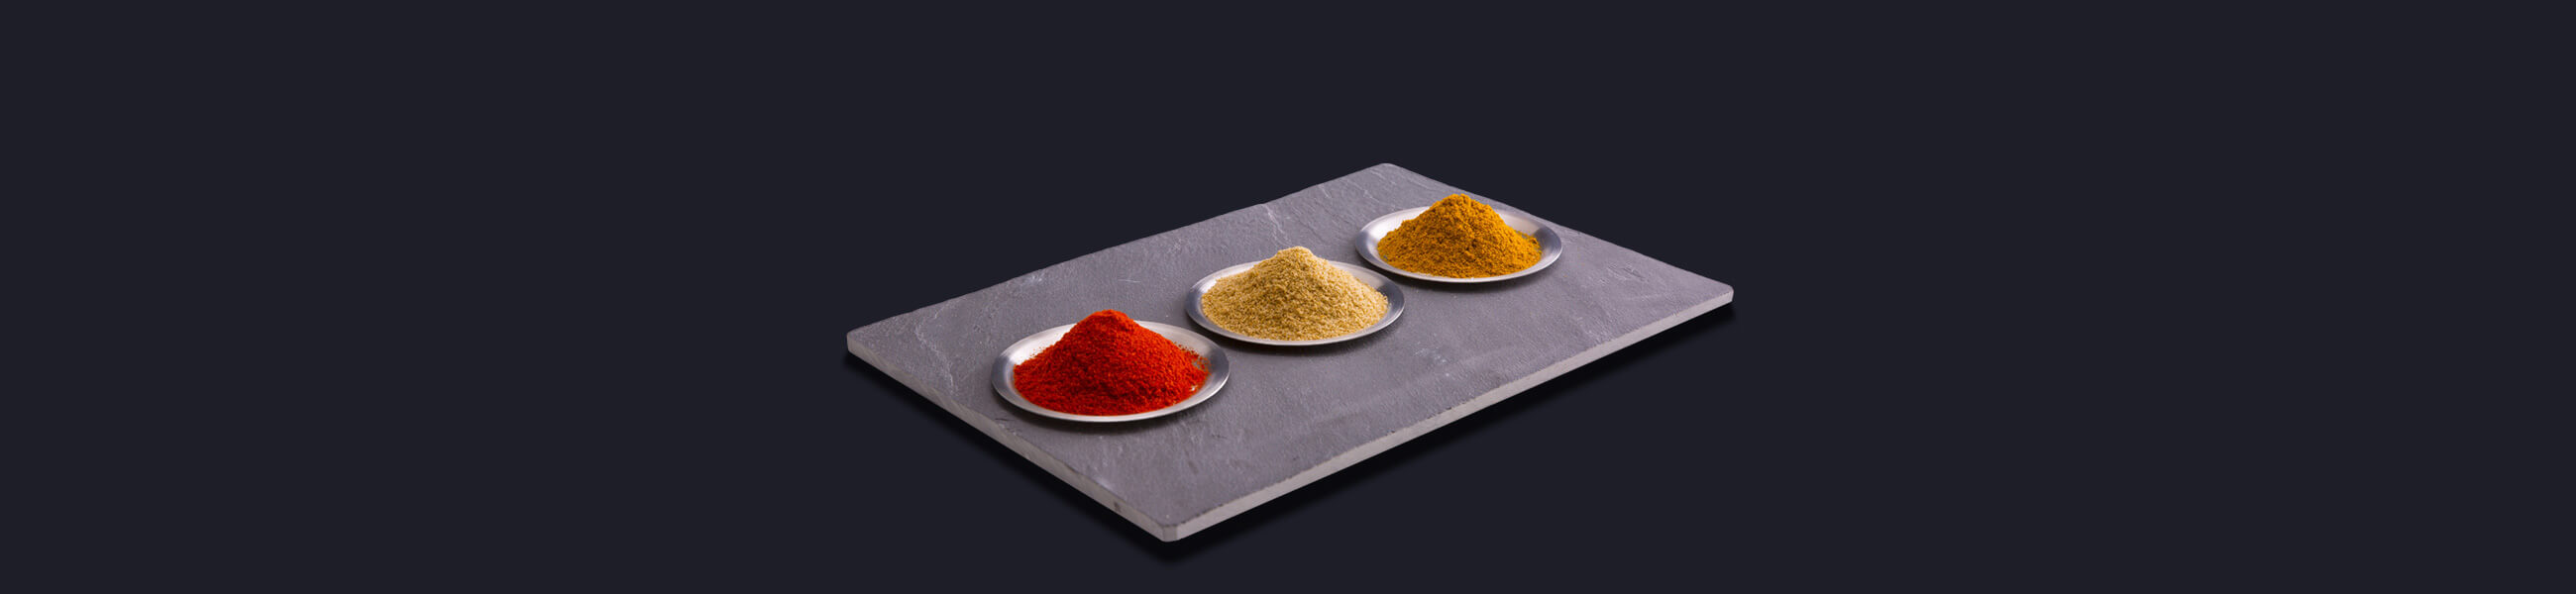 Sauces and spices that contain salt